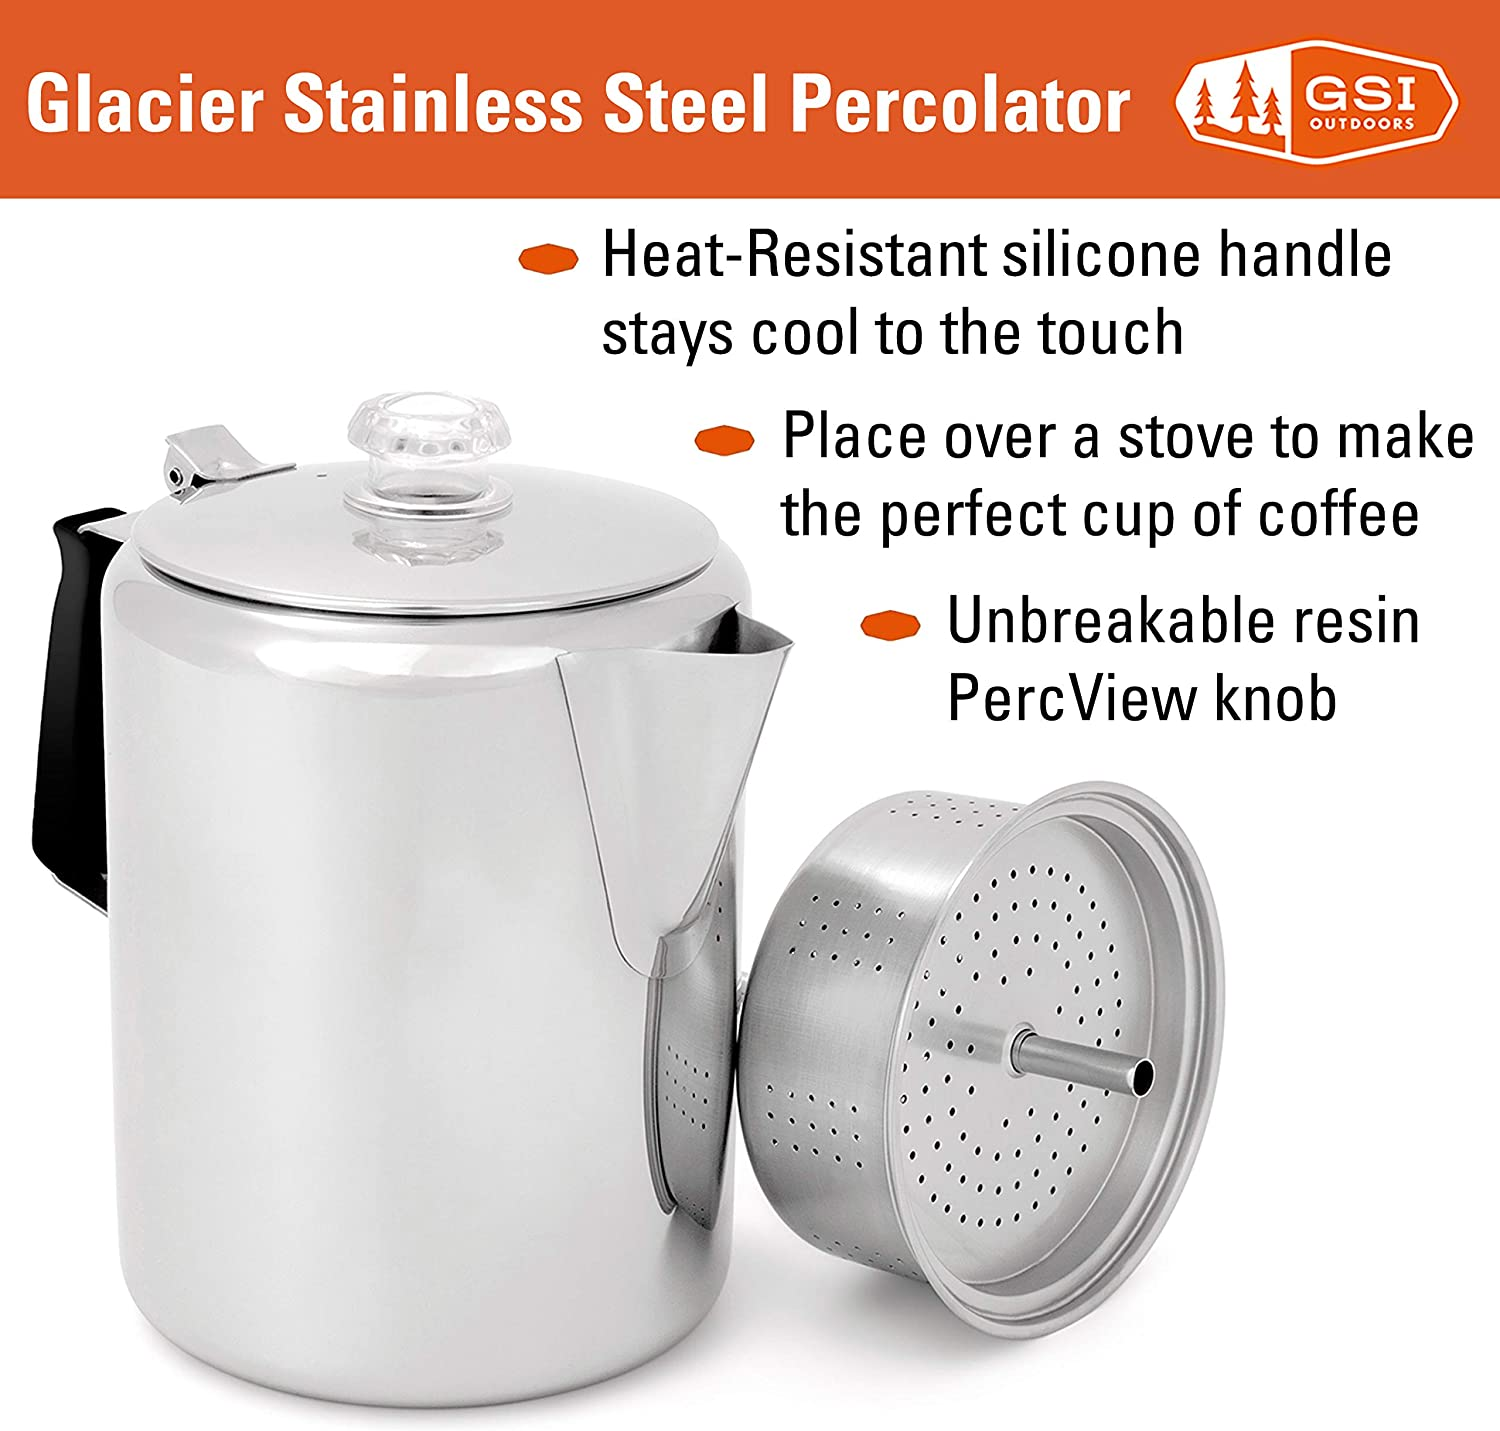 GSI Outdoors Glacier Stainless Steel Percolator Coffee Pot with Silicone Handle for Camping and Backpacking | For Individuals and Groups